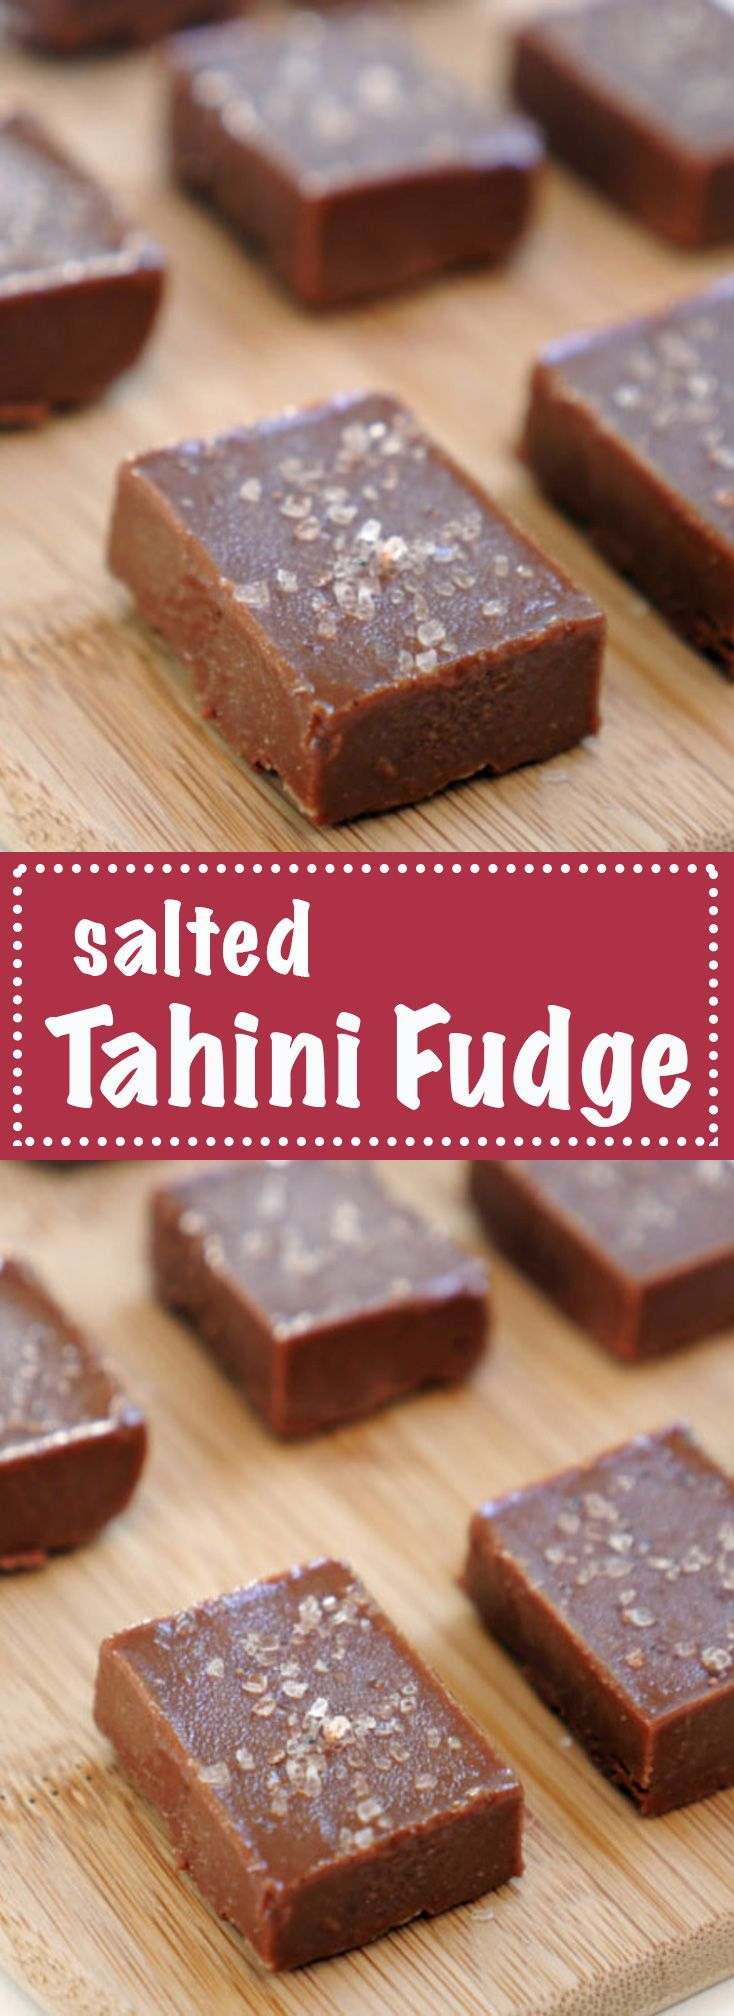 salted Tahini Fudge by MyHeartBeets.com